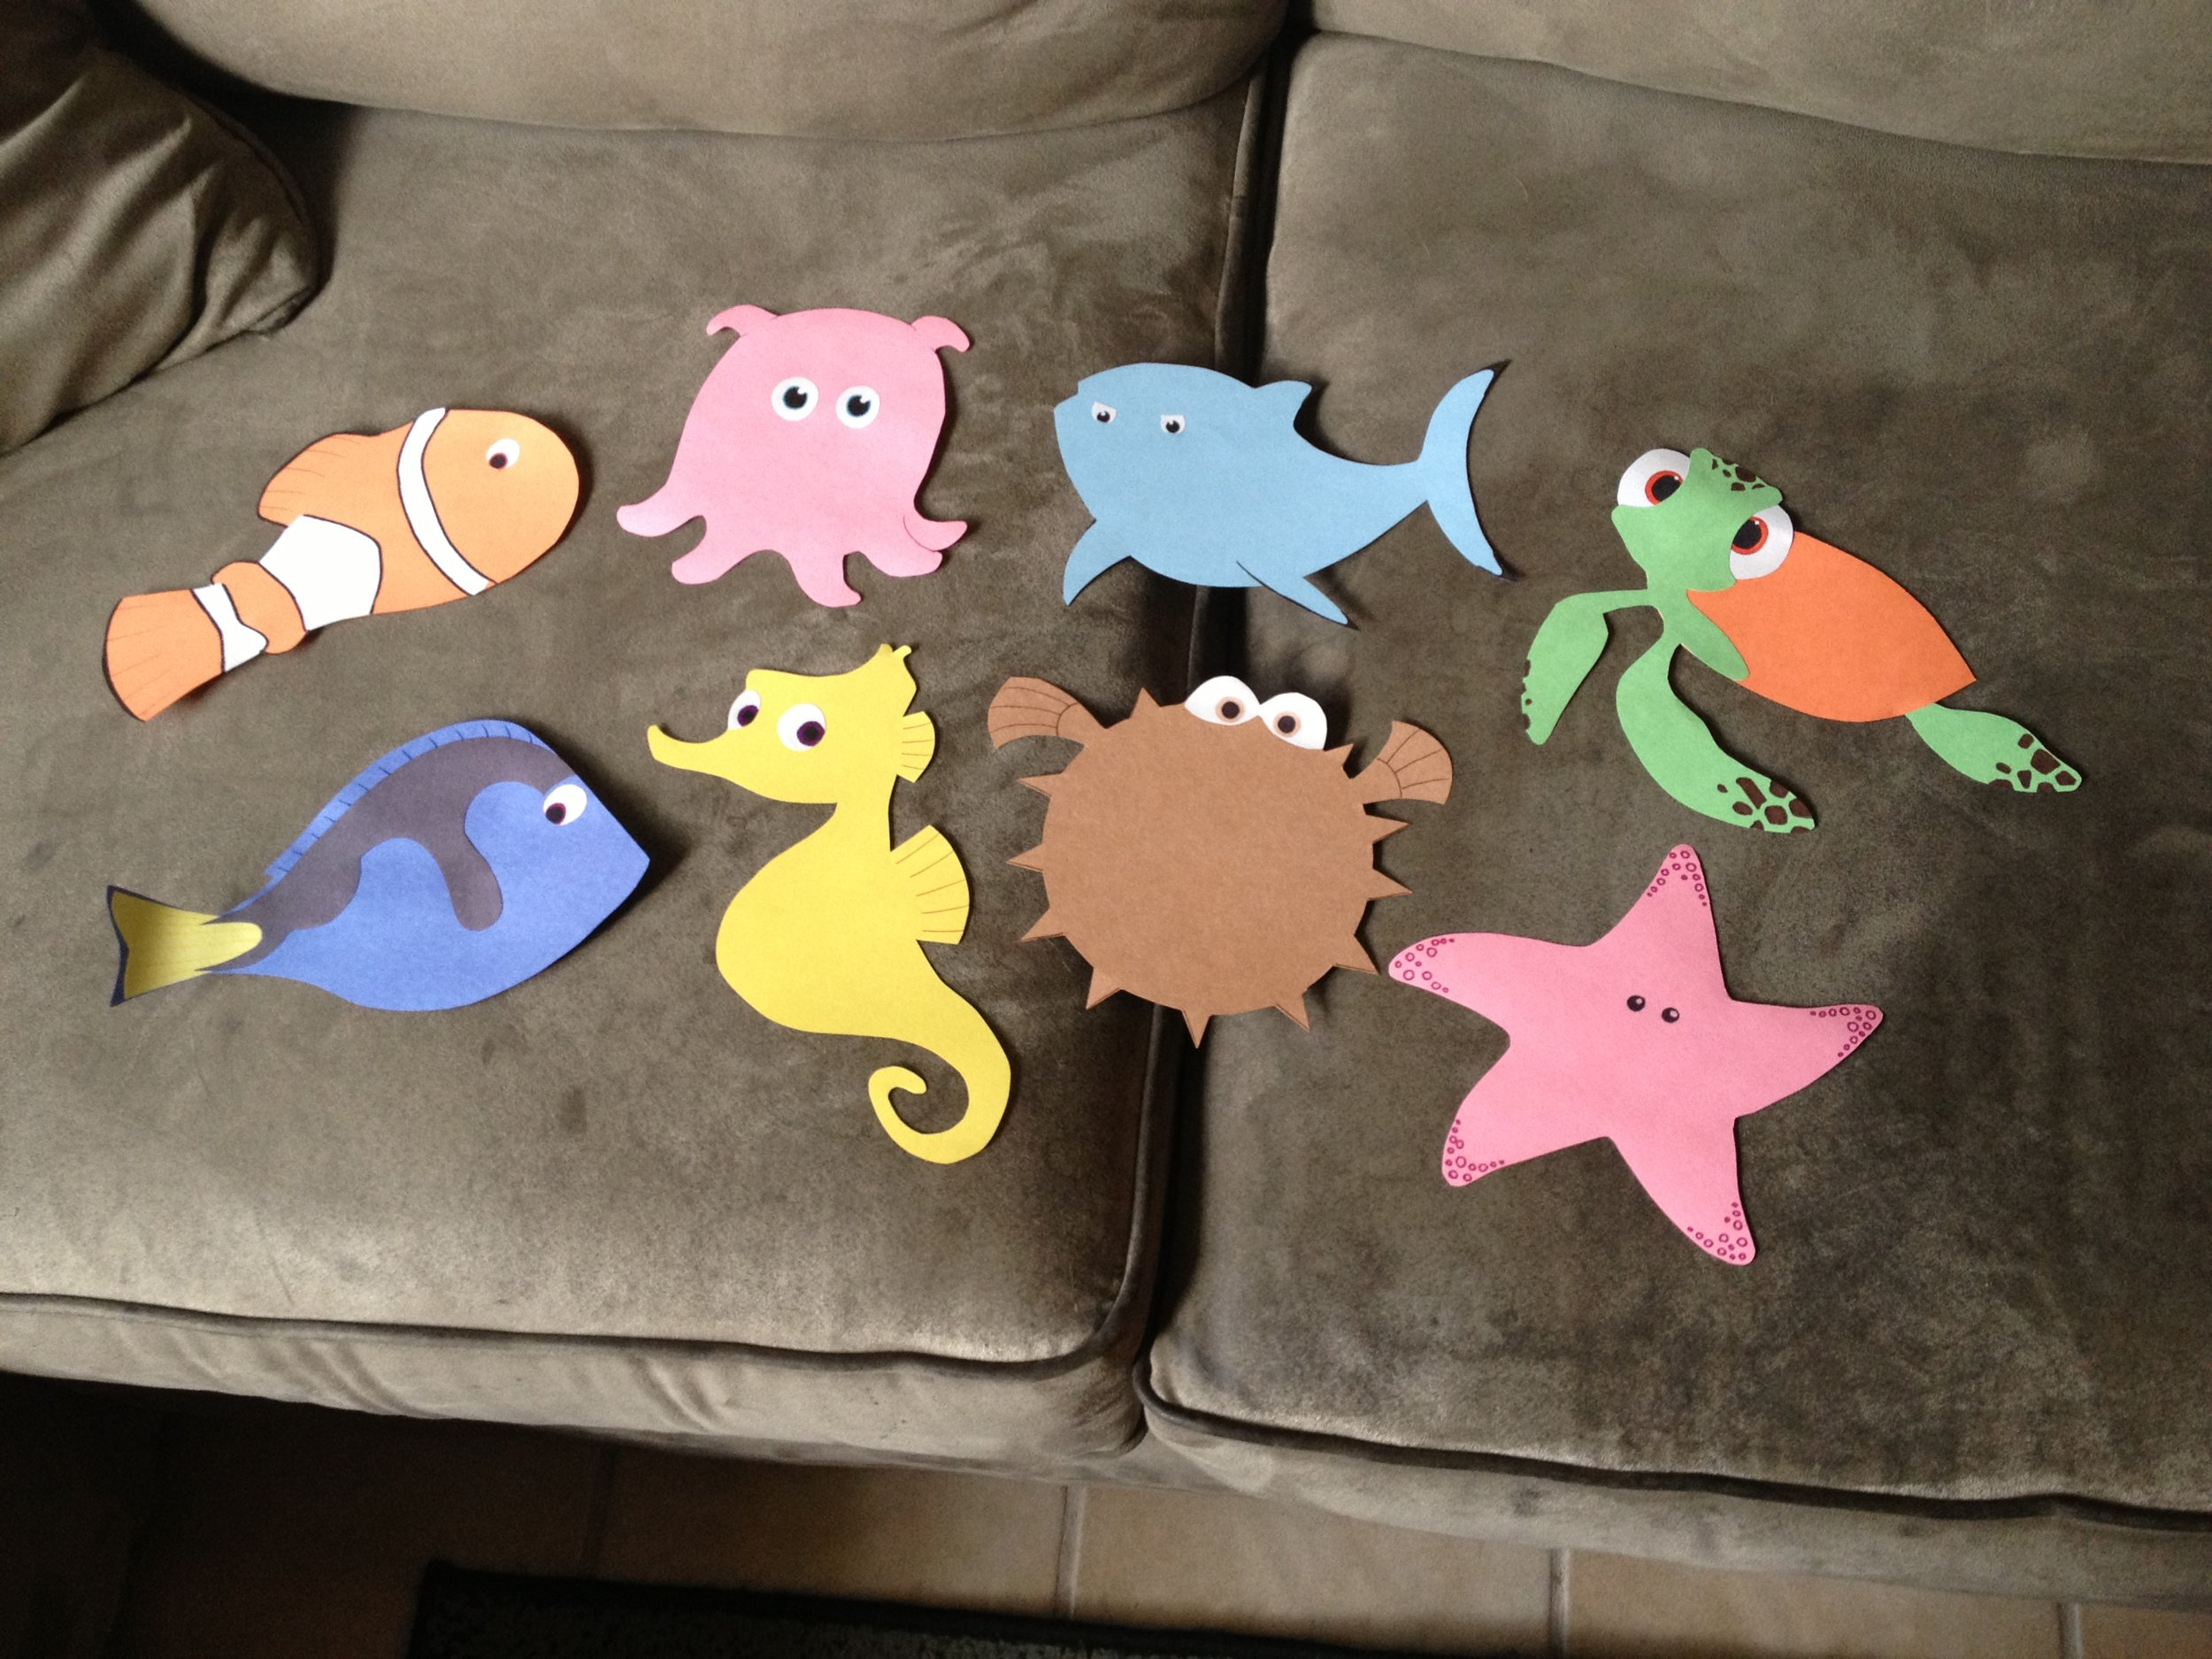 The original door decs made with construction paper